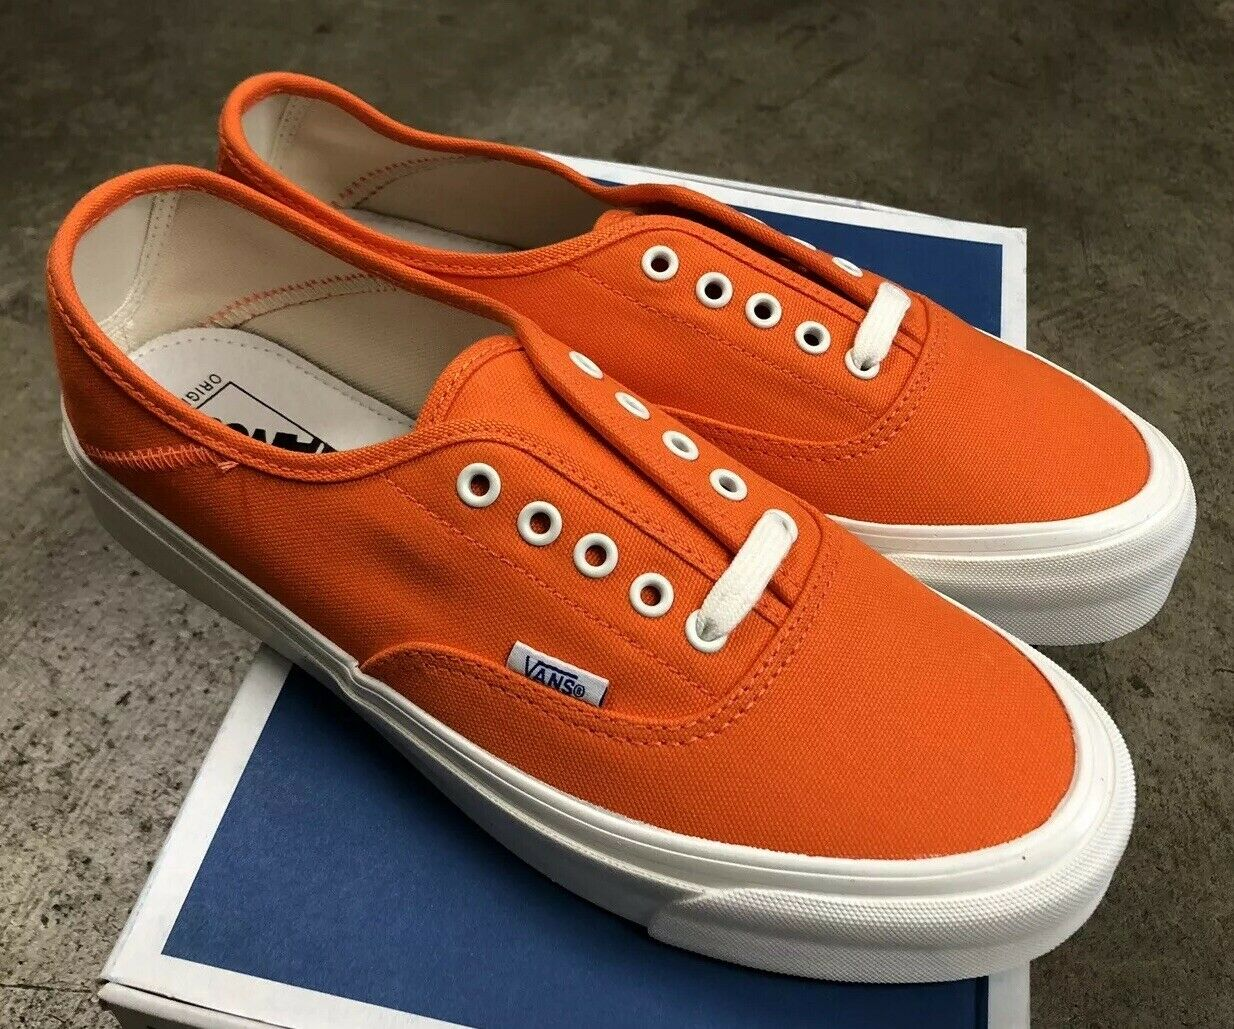 Vans OG Style 43 LX Canvas rot Orange Marsh Sz Mens 5.5   damen 7 NIB